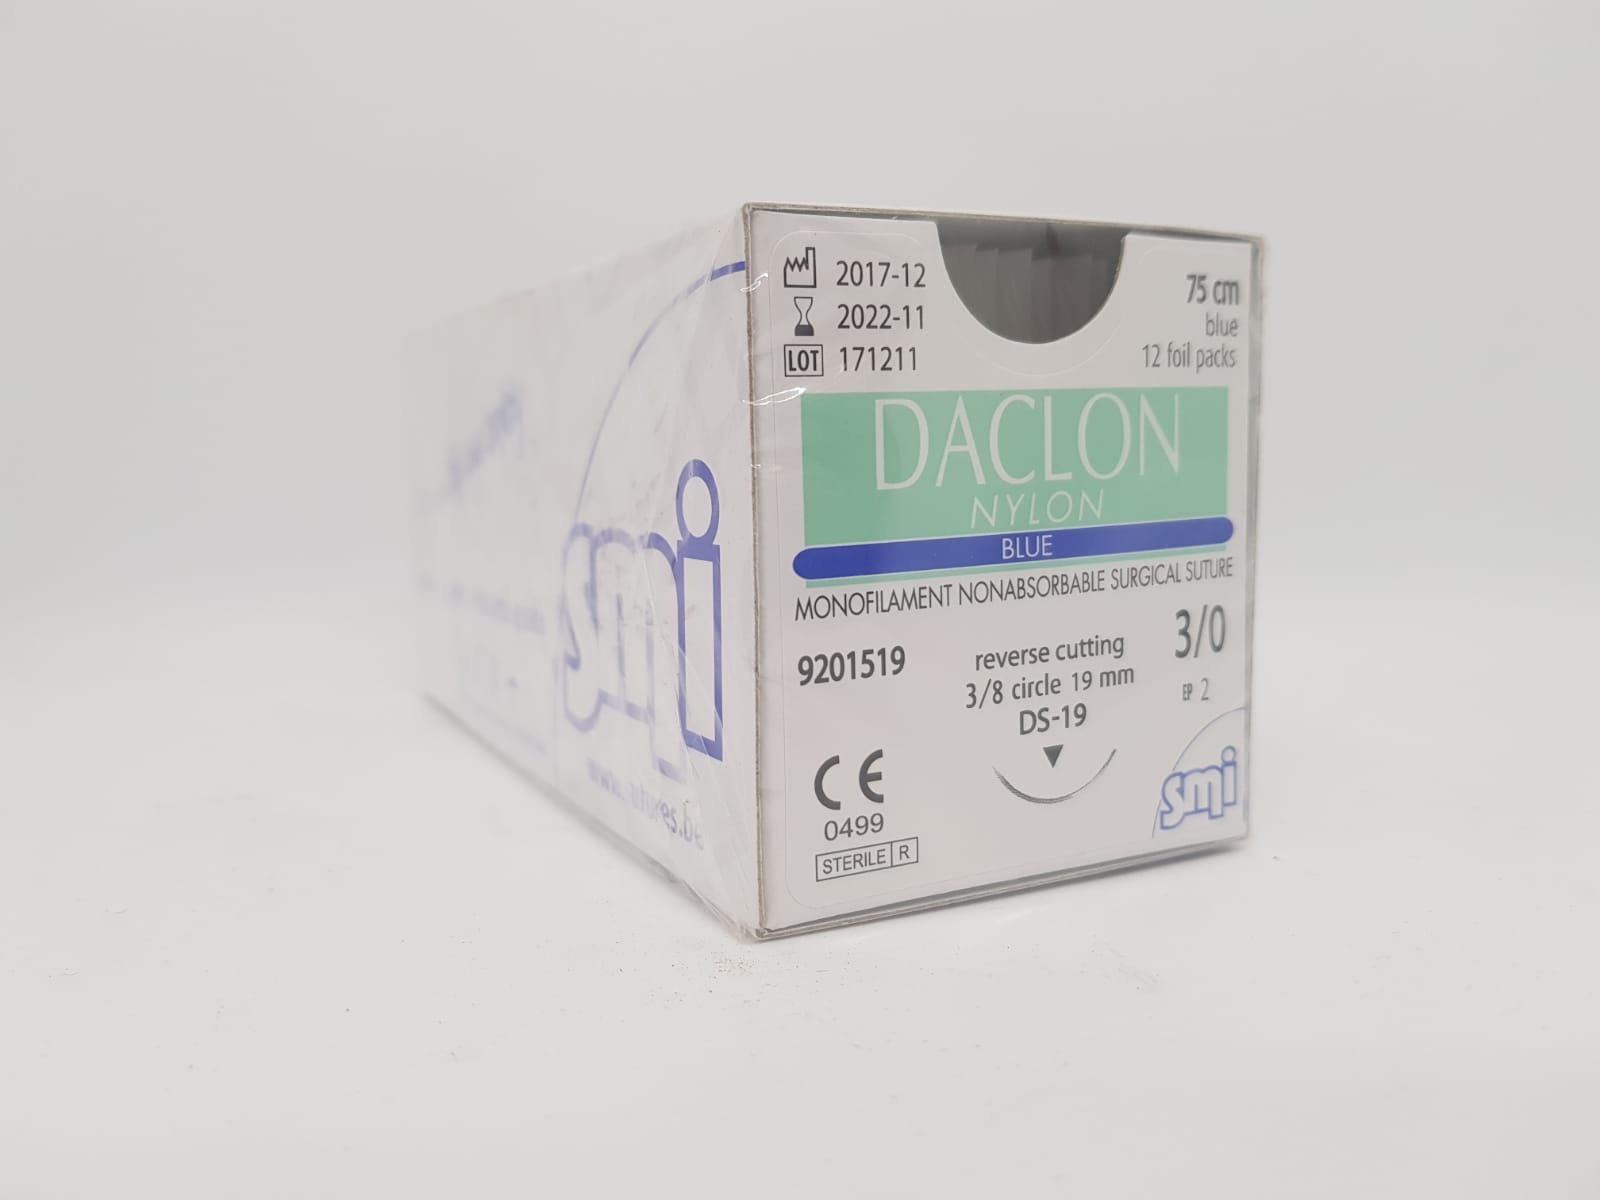 Suture Daclon 3/0 Circ DS19mm 75cm Blue, Box 12